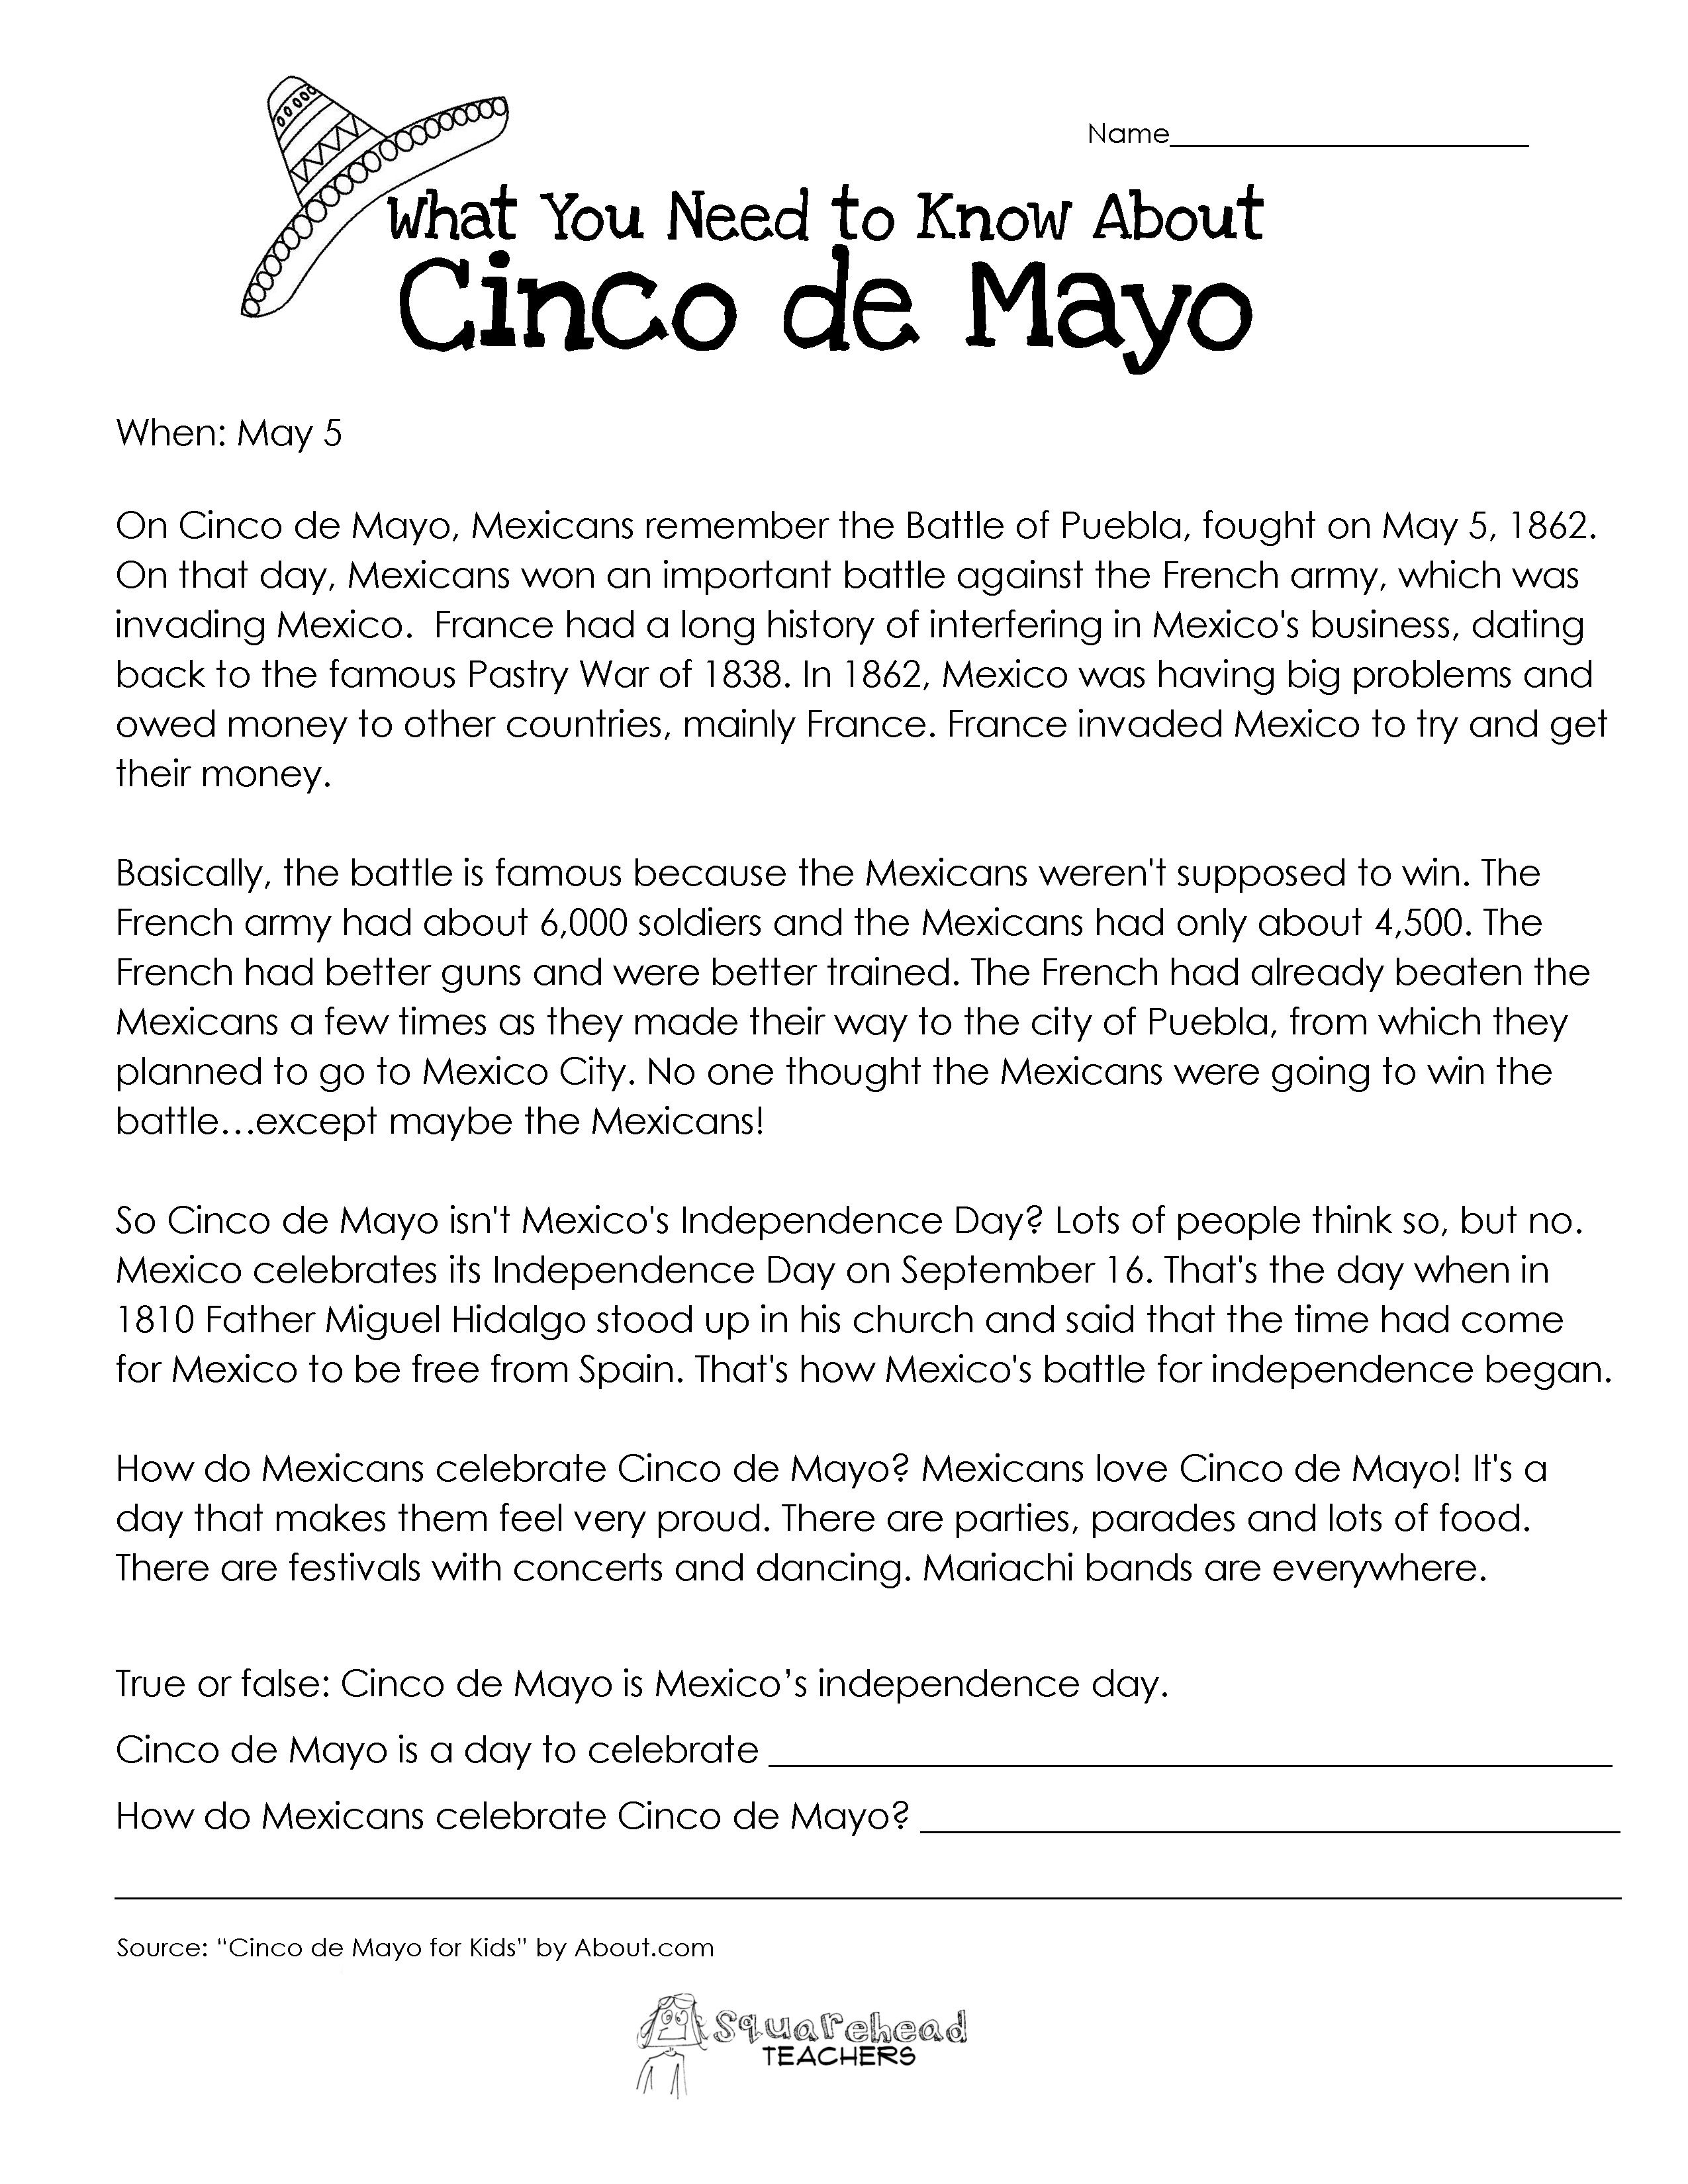 Coloring pages 5 de mayo - No Cinco De Mayo Isn T Mexico S Independence Day That S On September 16